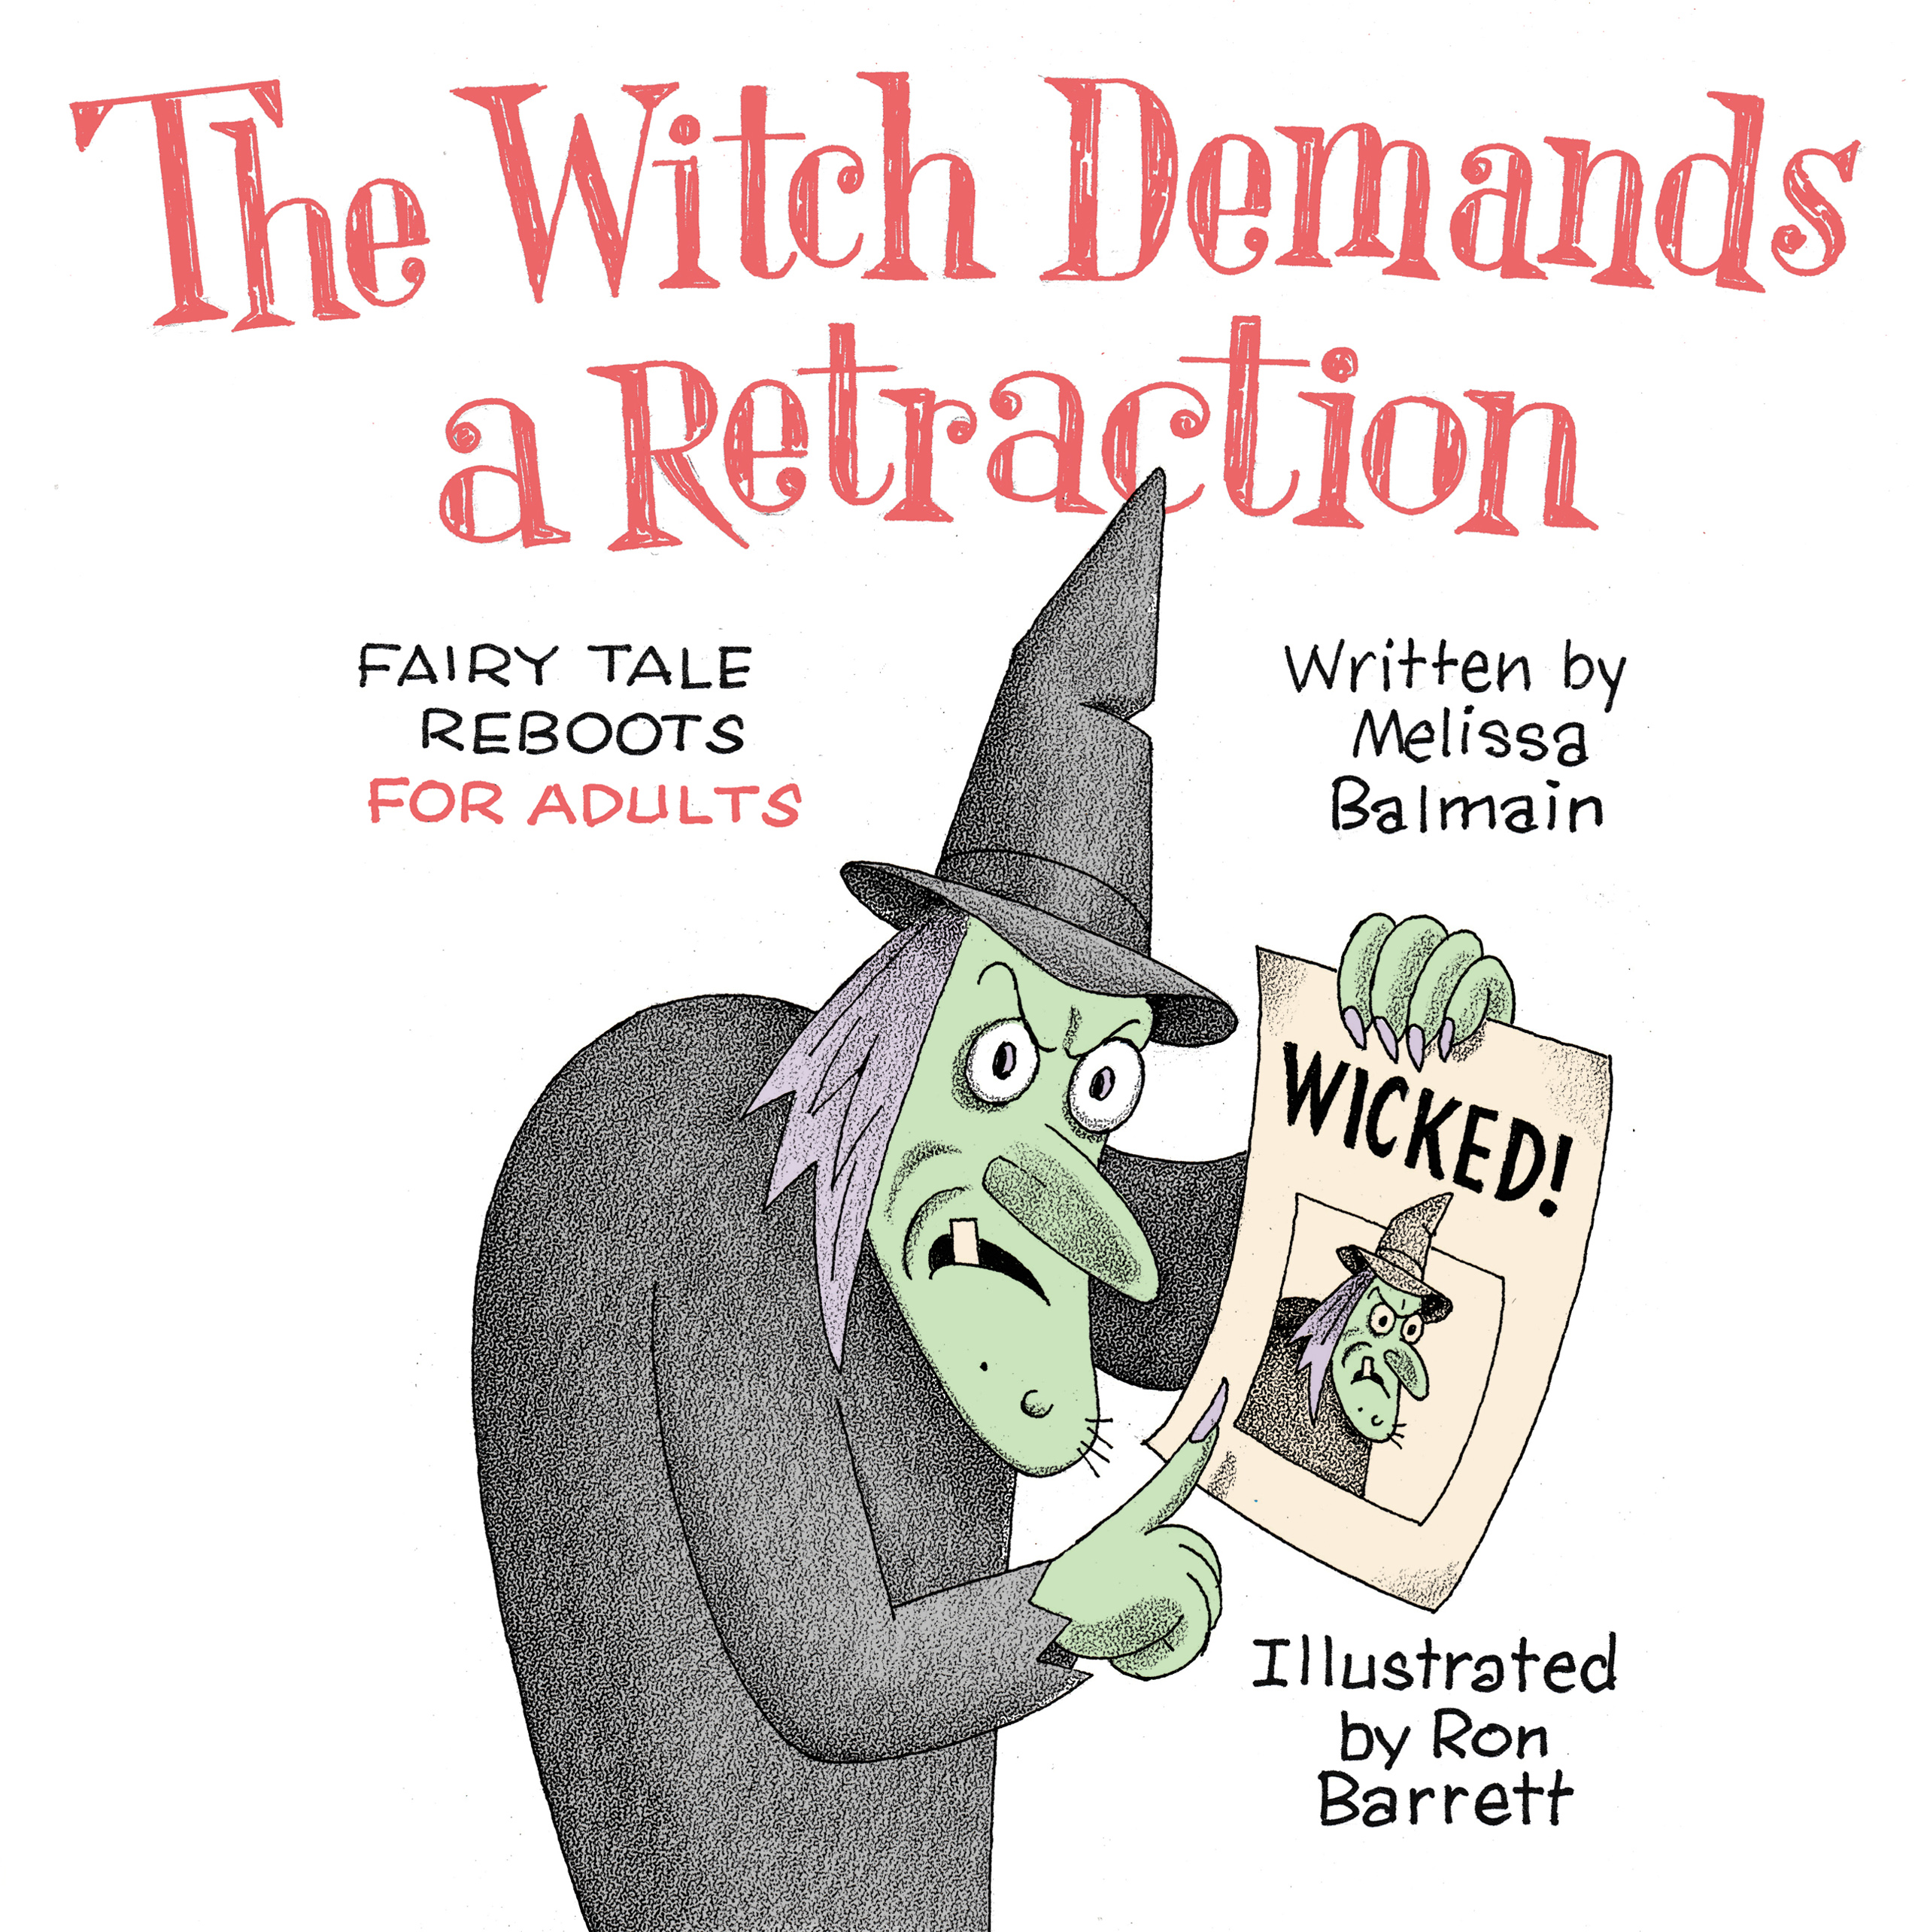 An Instant Classic Released 'The Witch Demands A Retraction - Fairy Tale Reboots For Adults' By Melissa Balmain & Illustrated by Ron Barrett, of Iconic 'Cloudy With A Chance of Meatballs'.